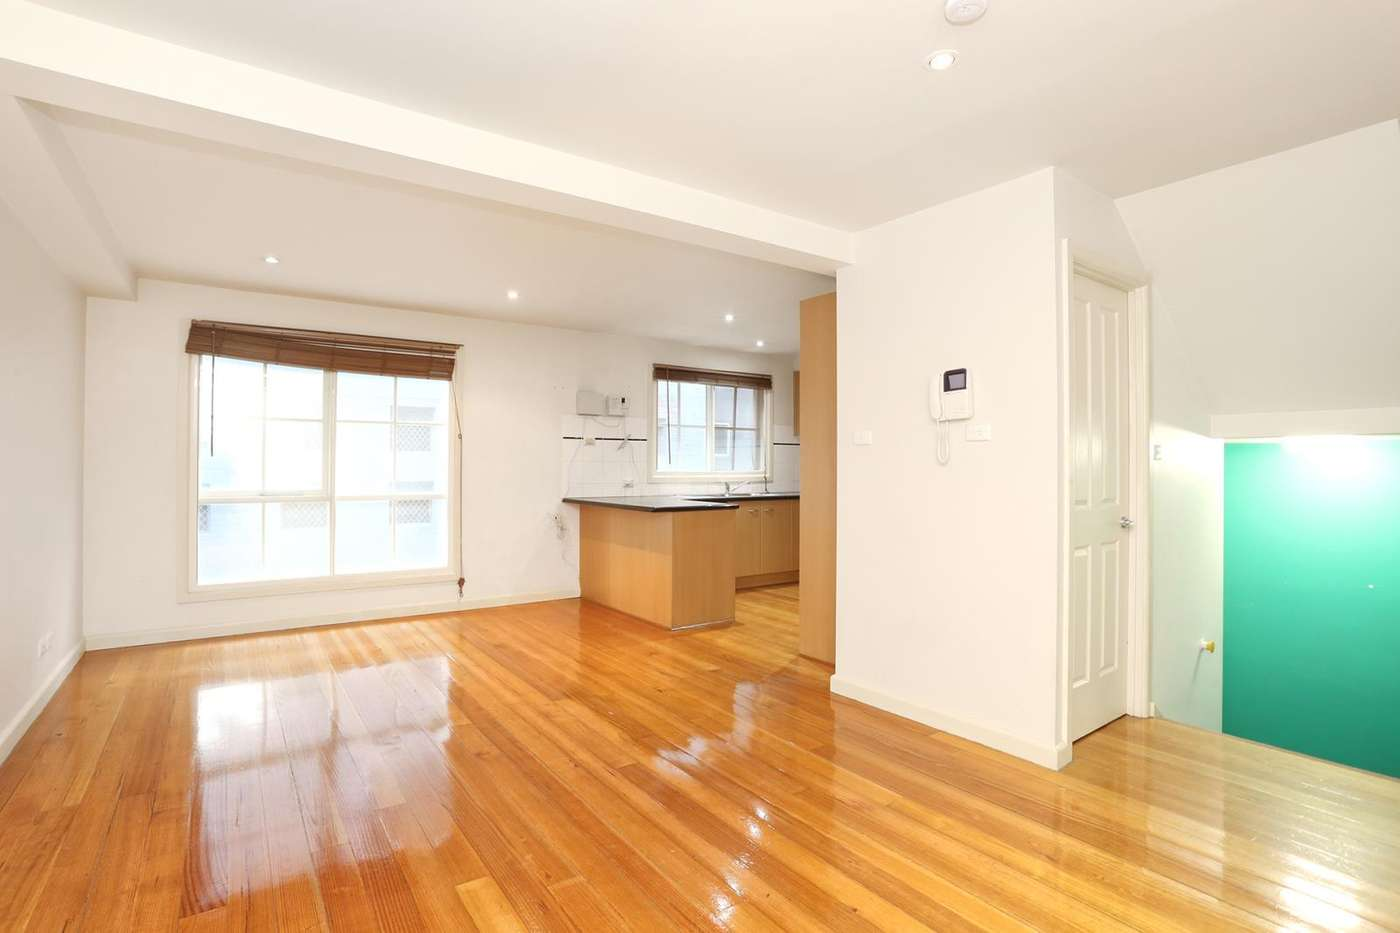 Main view of Homely house listing, 11 Kelvin Place, Carlton, VIC 3053